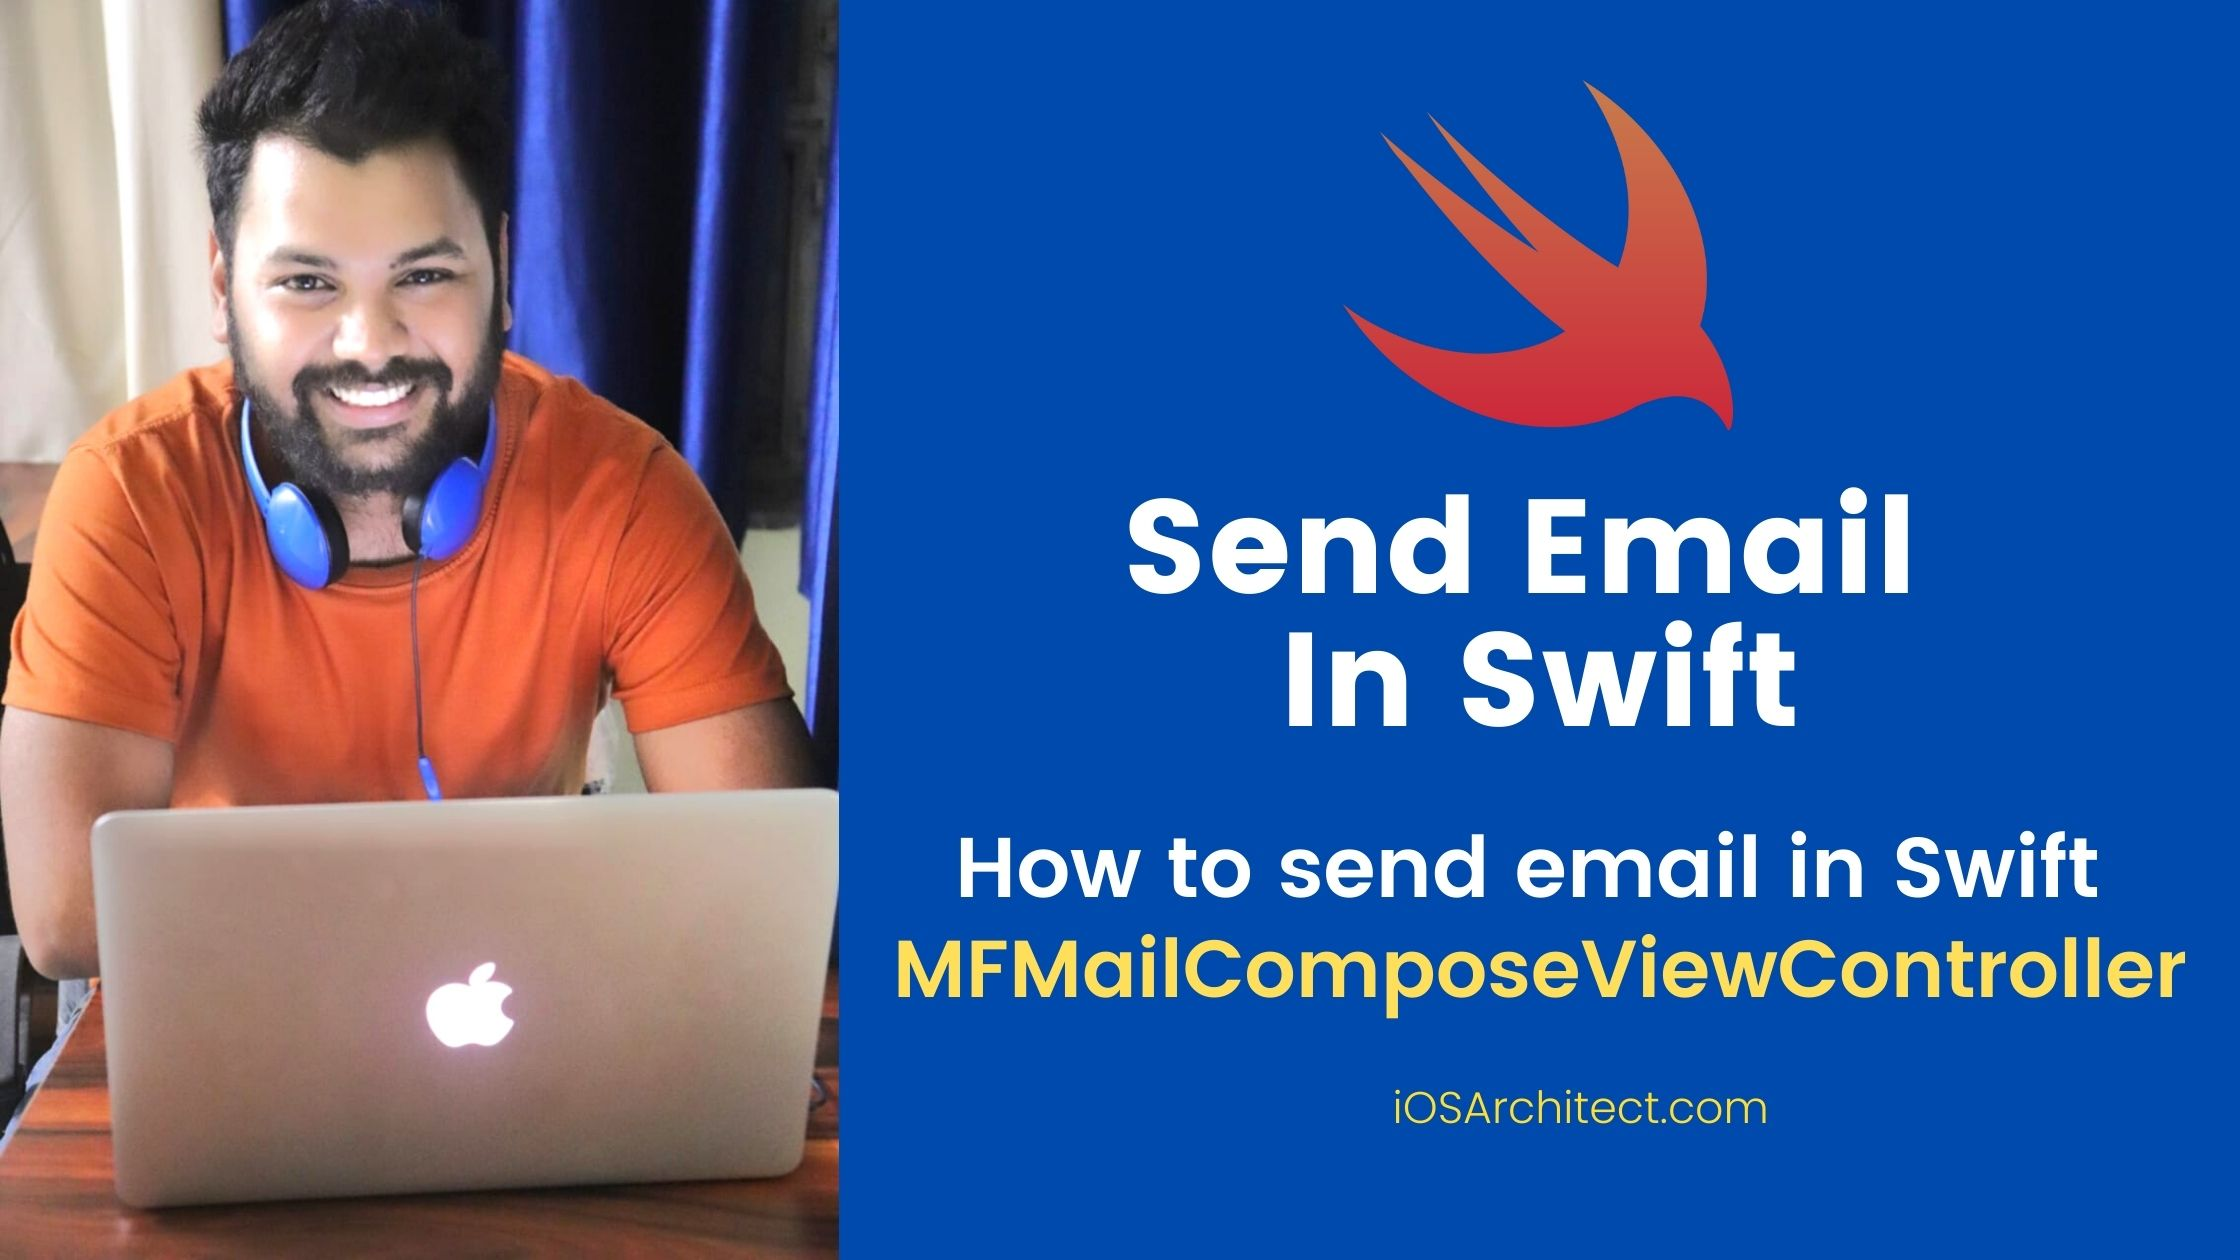 How to send email in Swift MFMailComposeViewController